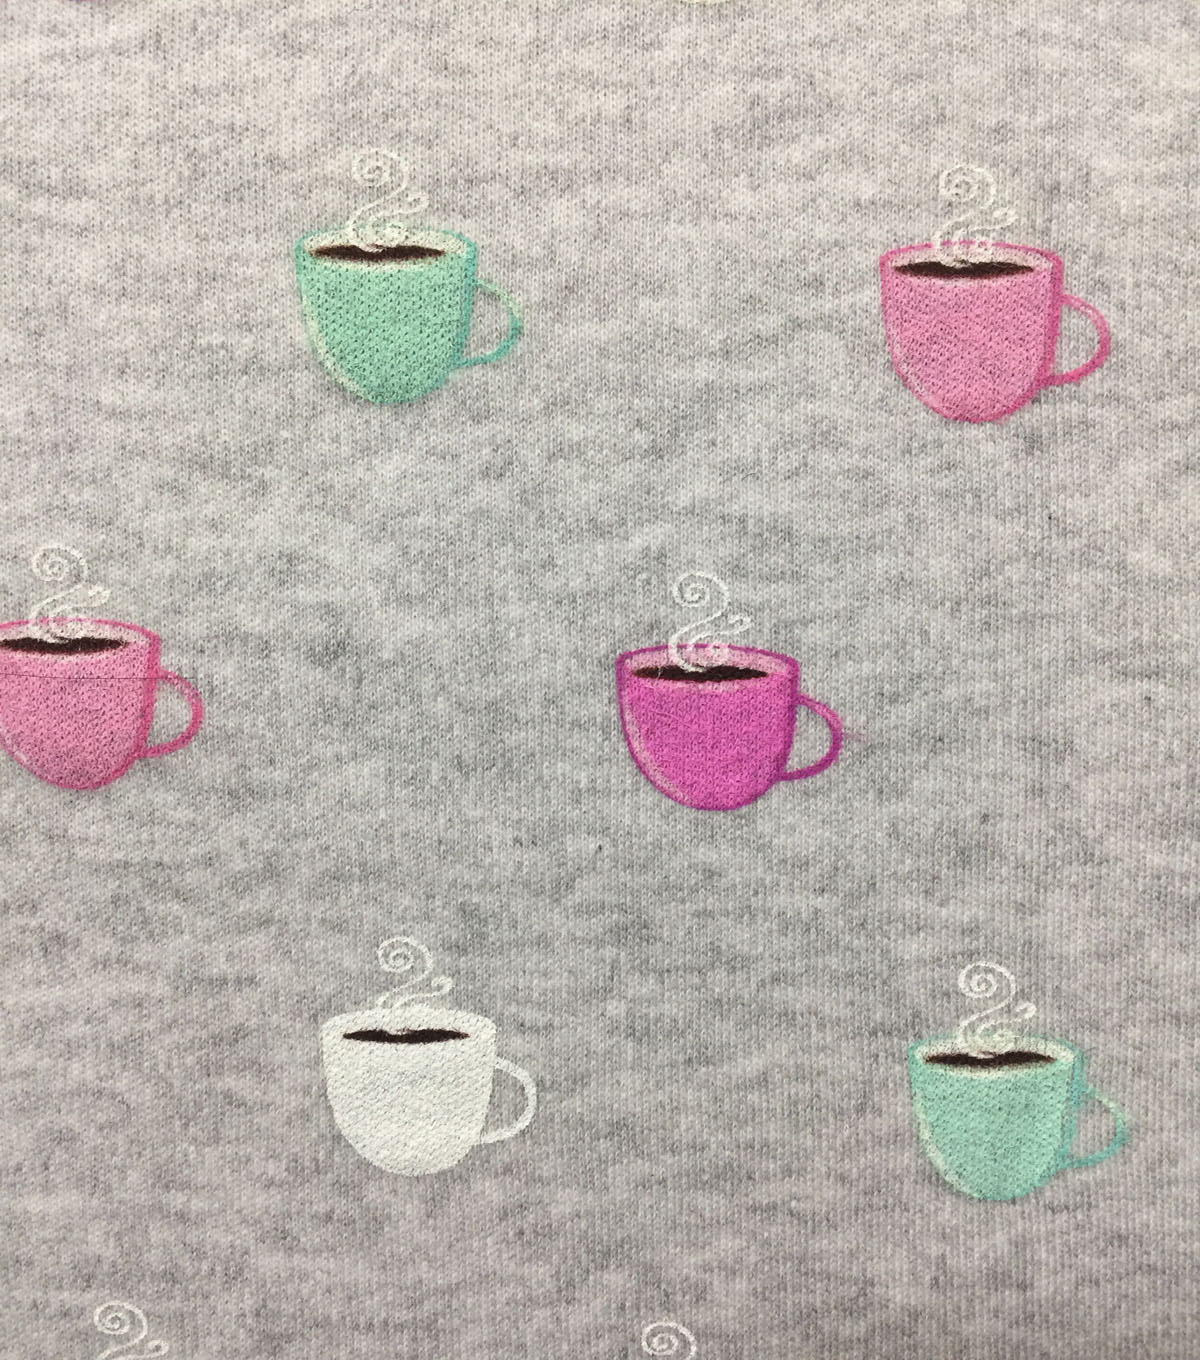 Doodles Cotton Spandex Interlock Knit Fabric-Lt Gray Heather Java Cups